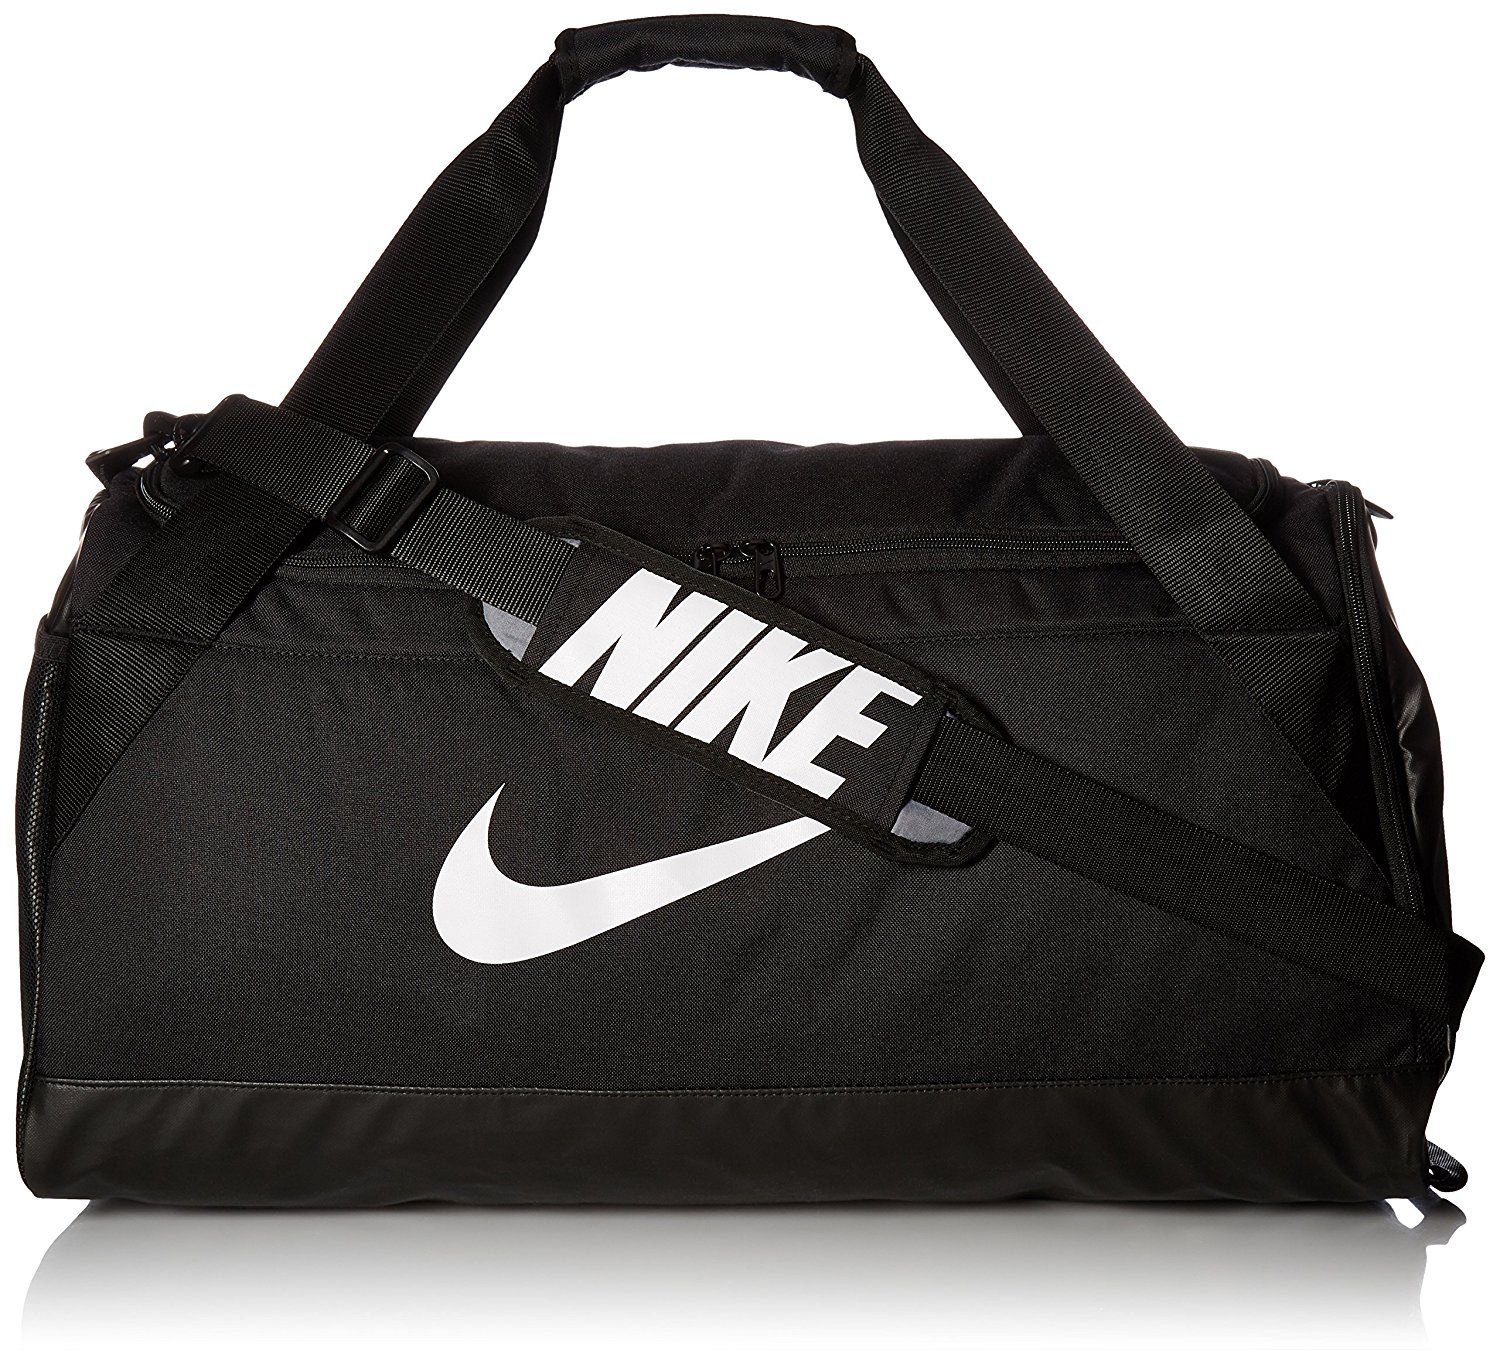 7e759368a9a3 Nike Brasilia (Medium) Training Duffel Bag   Visit the image link more  details.